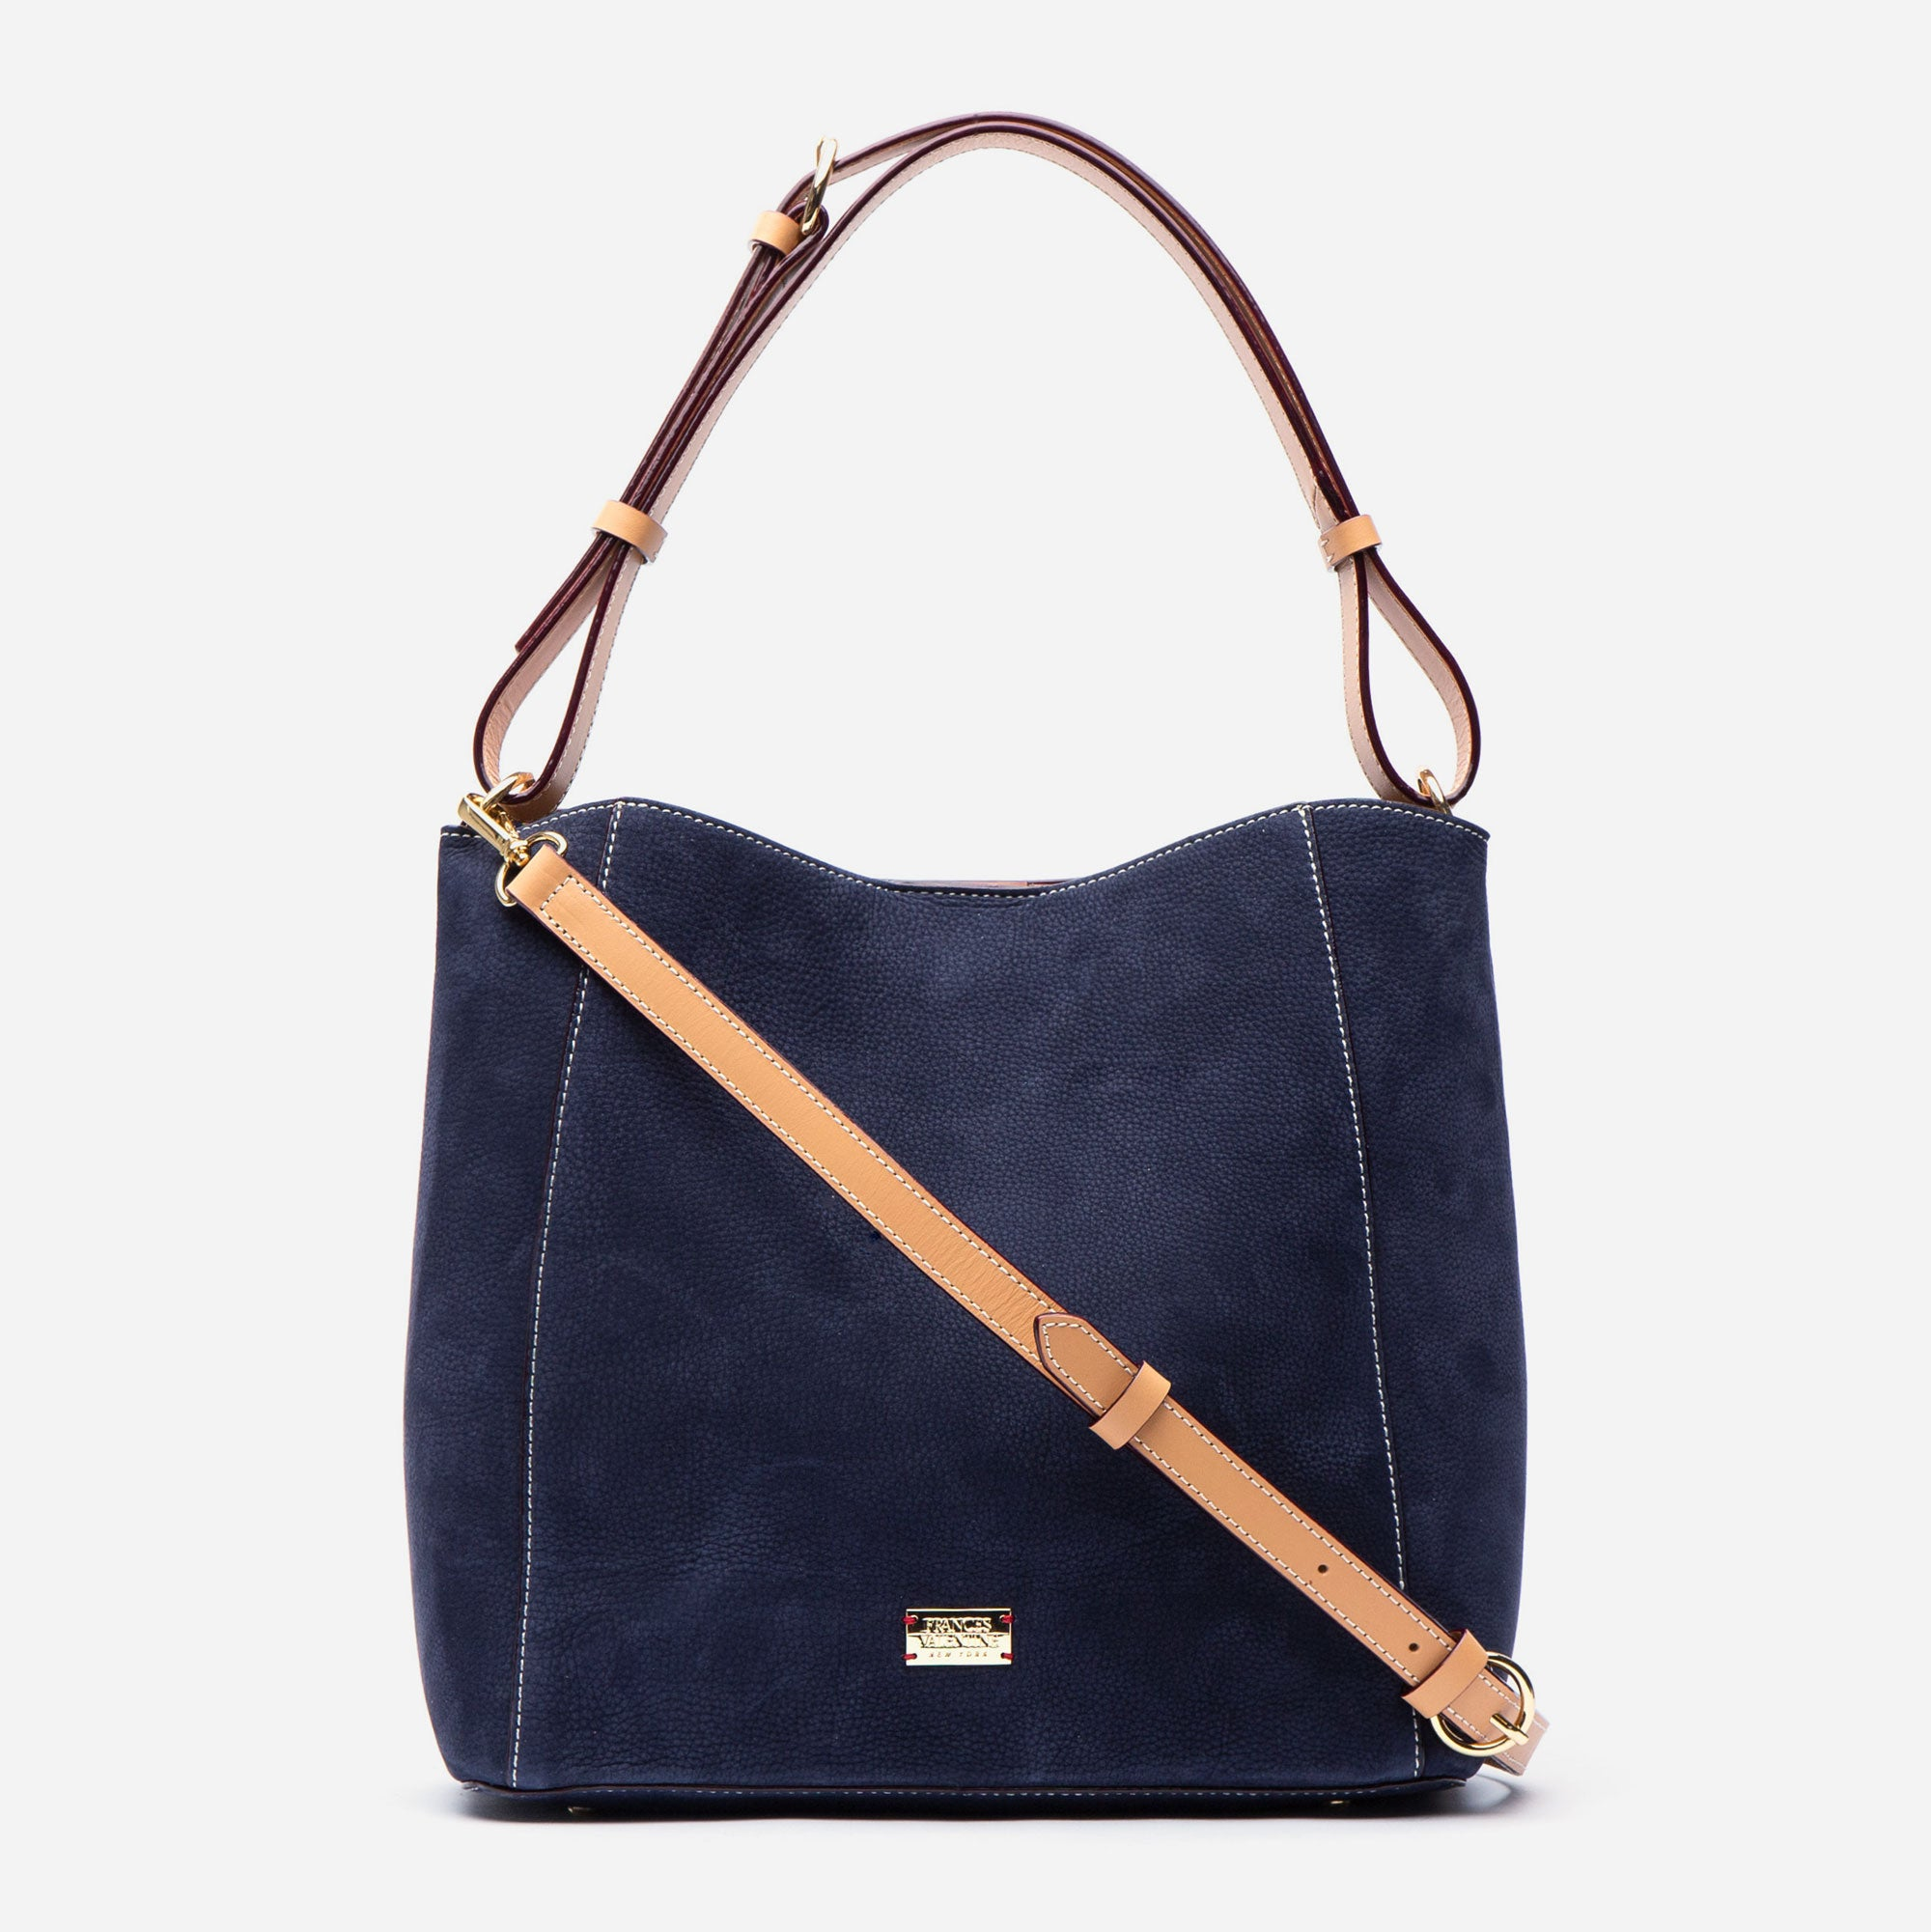 June Hobo Handbag Tumbled Nubuck Navy